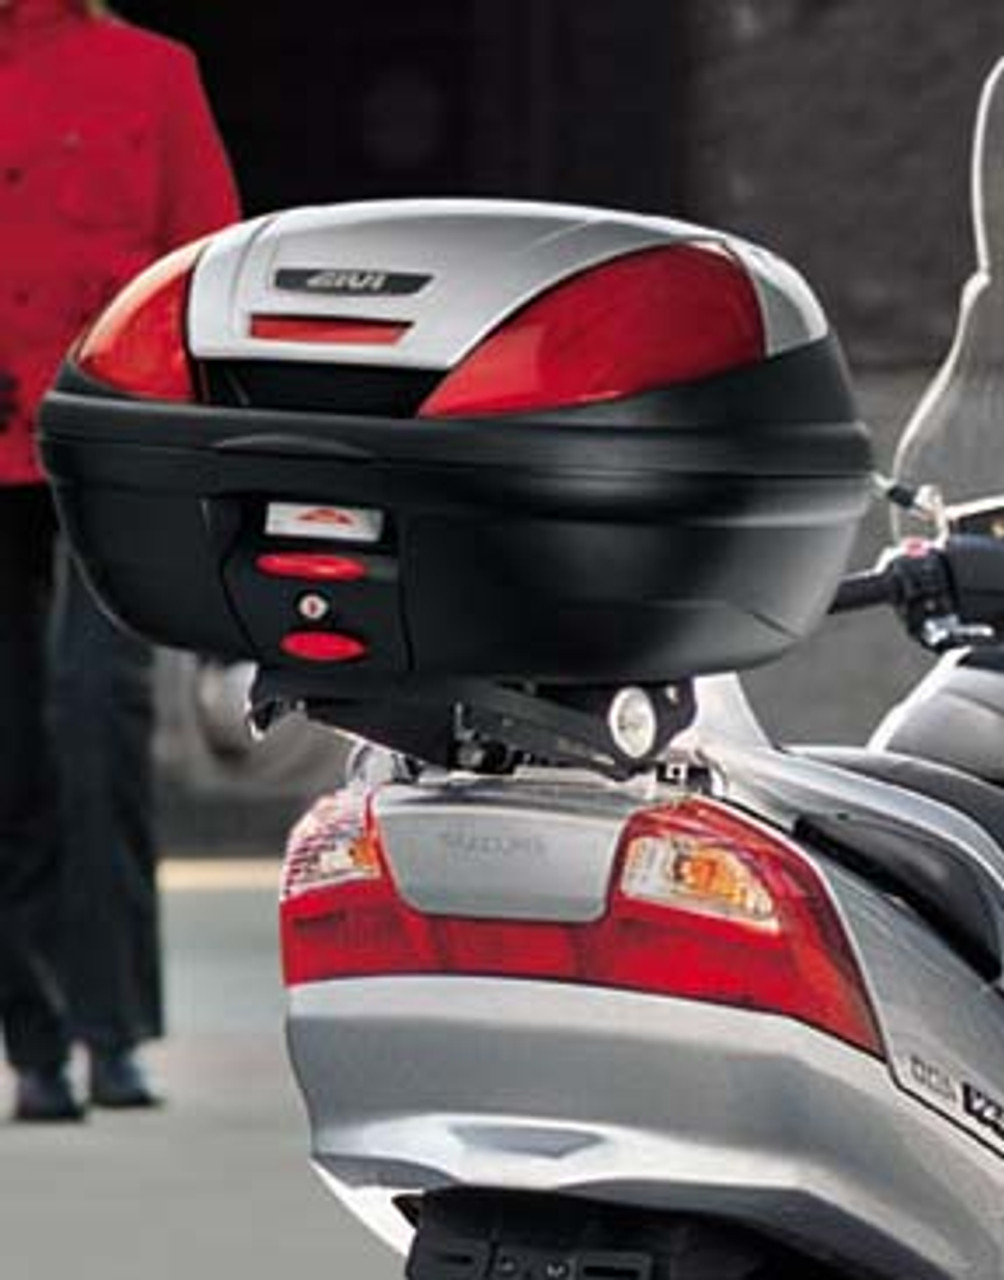 E370NT GIVI Monolock Top Box Commuter Cases (Tech Version), for Scooters, 39 L, with Black Tech Reflectors